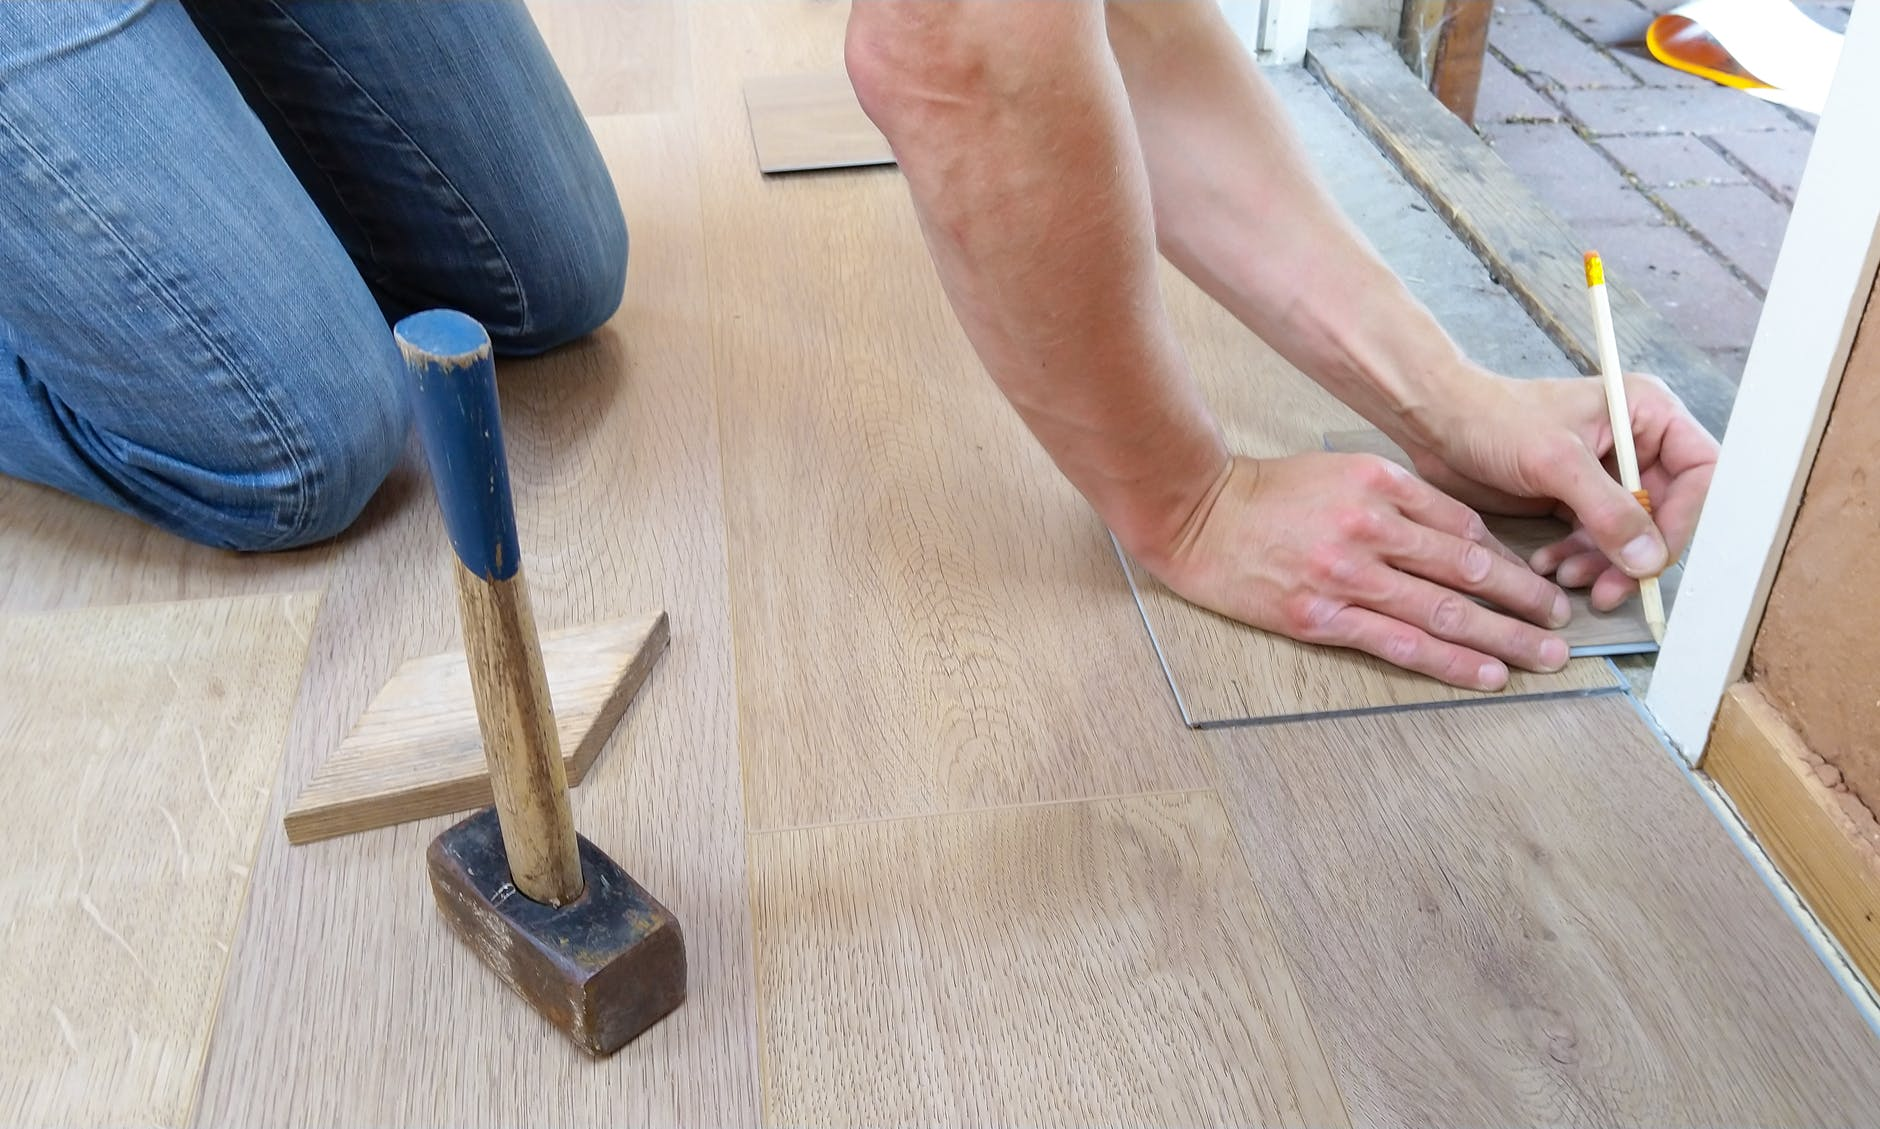 Important FAQs about floorboard installation